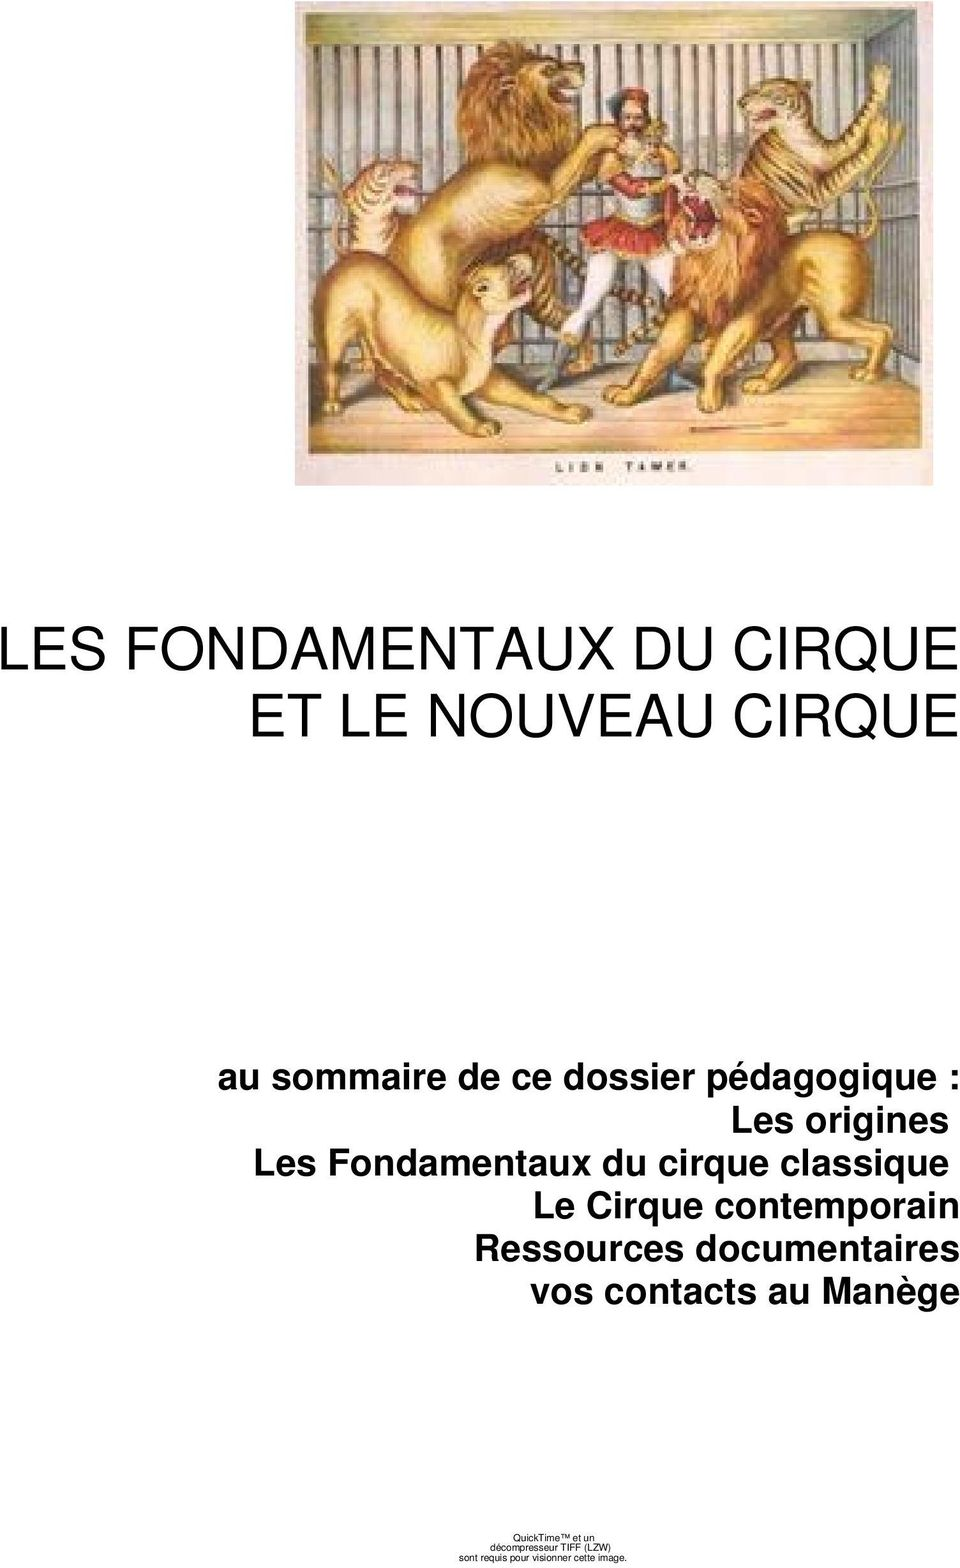 Le Cirque contemporain Ressources documentaires vos contacts au Manège